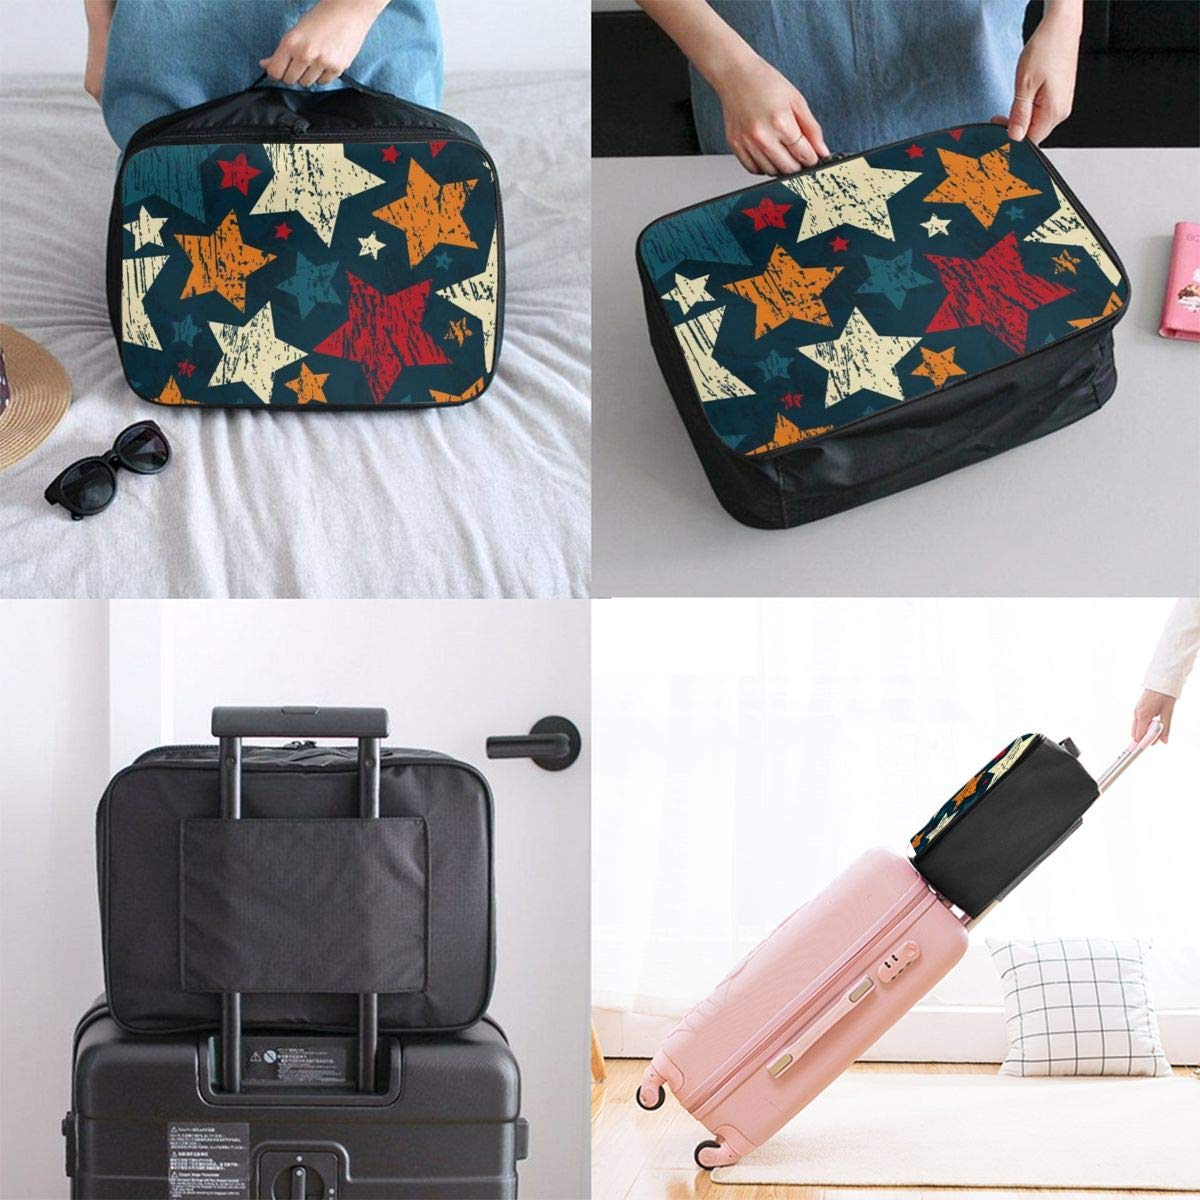 Cartoon Stars In Navy Blue Travel Lightweight Waterproof Foldable Storage Carry Luggage Duffle Tote Bag Large Capacity In Trolley Handle Bags 6x11x15 Inch